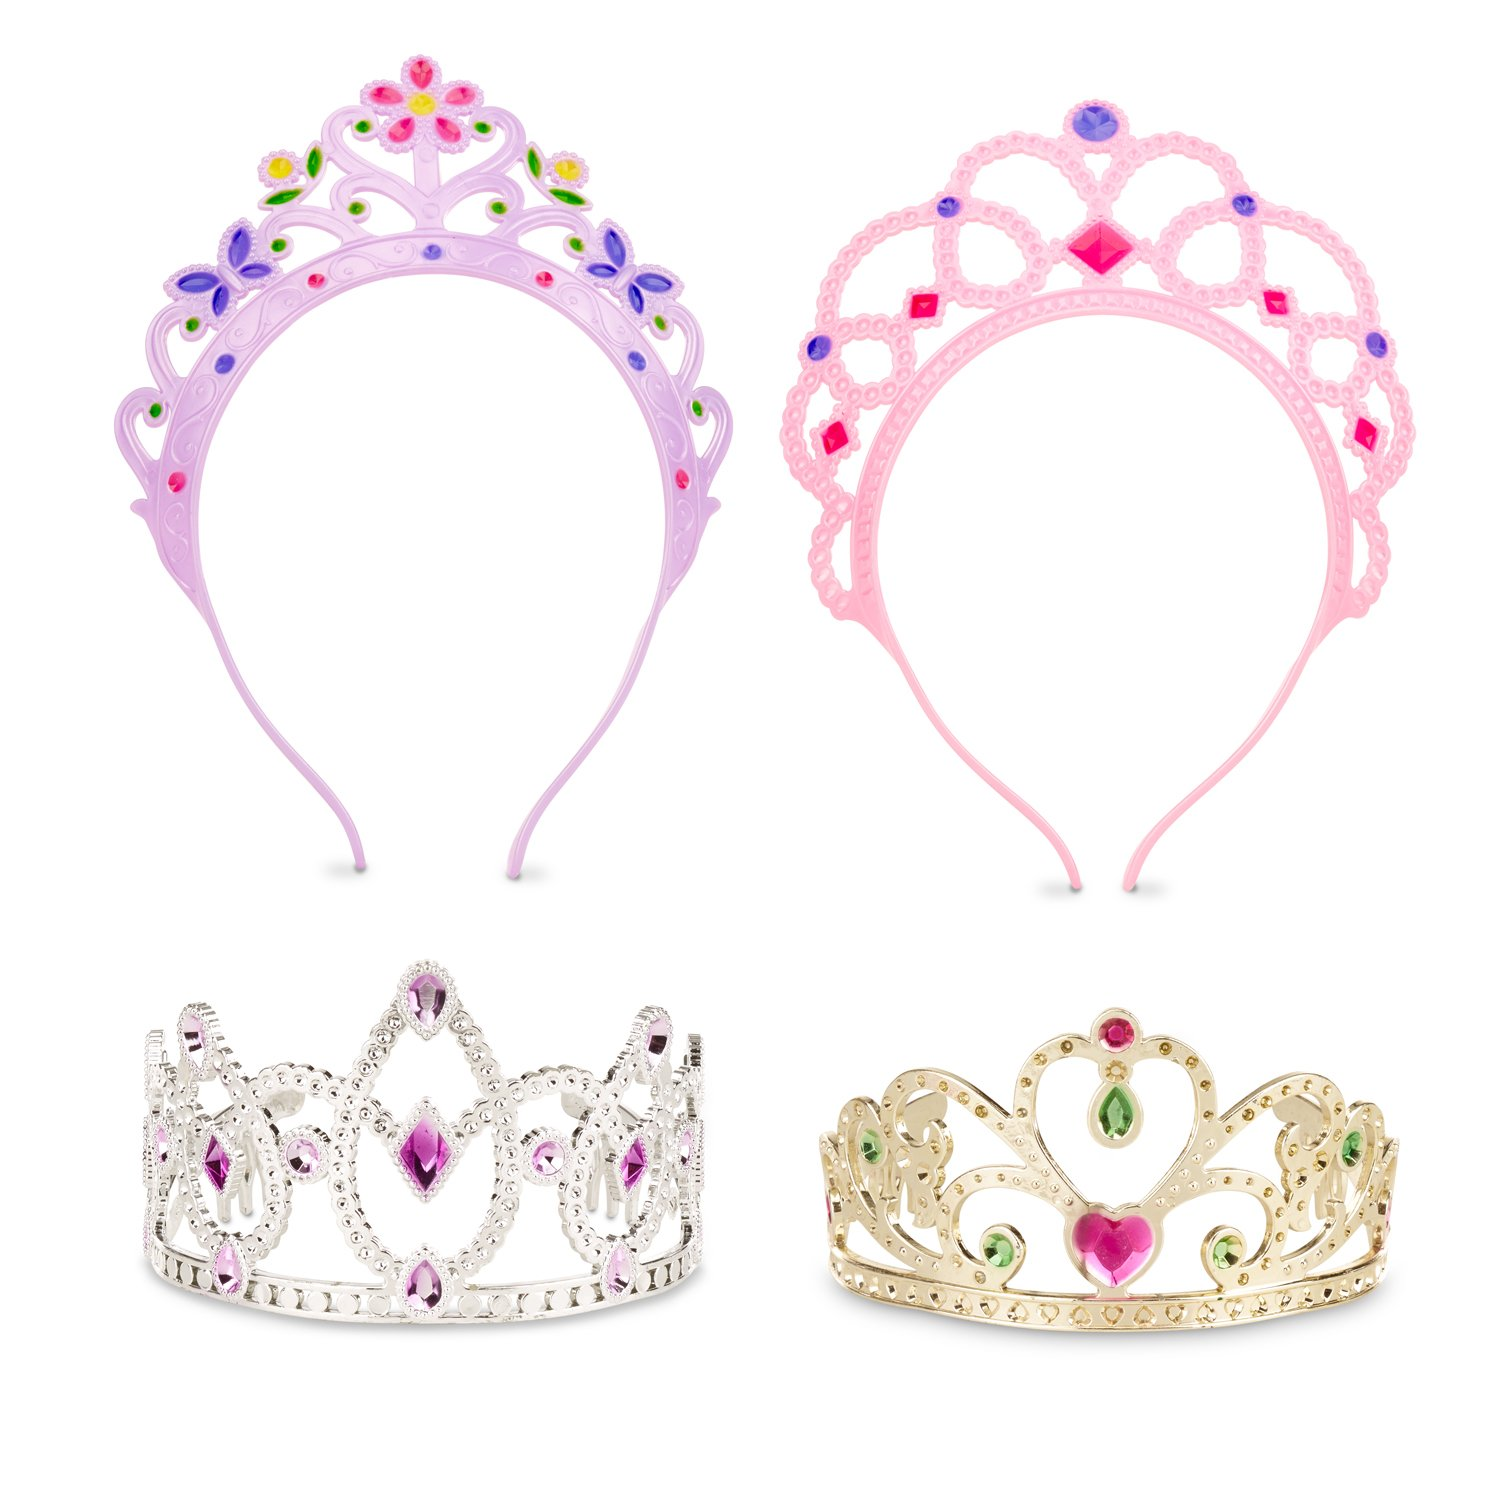 Melissa & Doug Dress-Up Tiaras for Costume Role Play (4 pcs) 8525